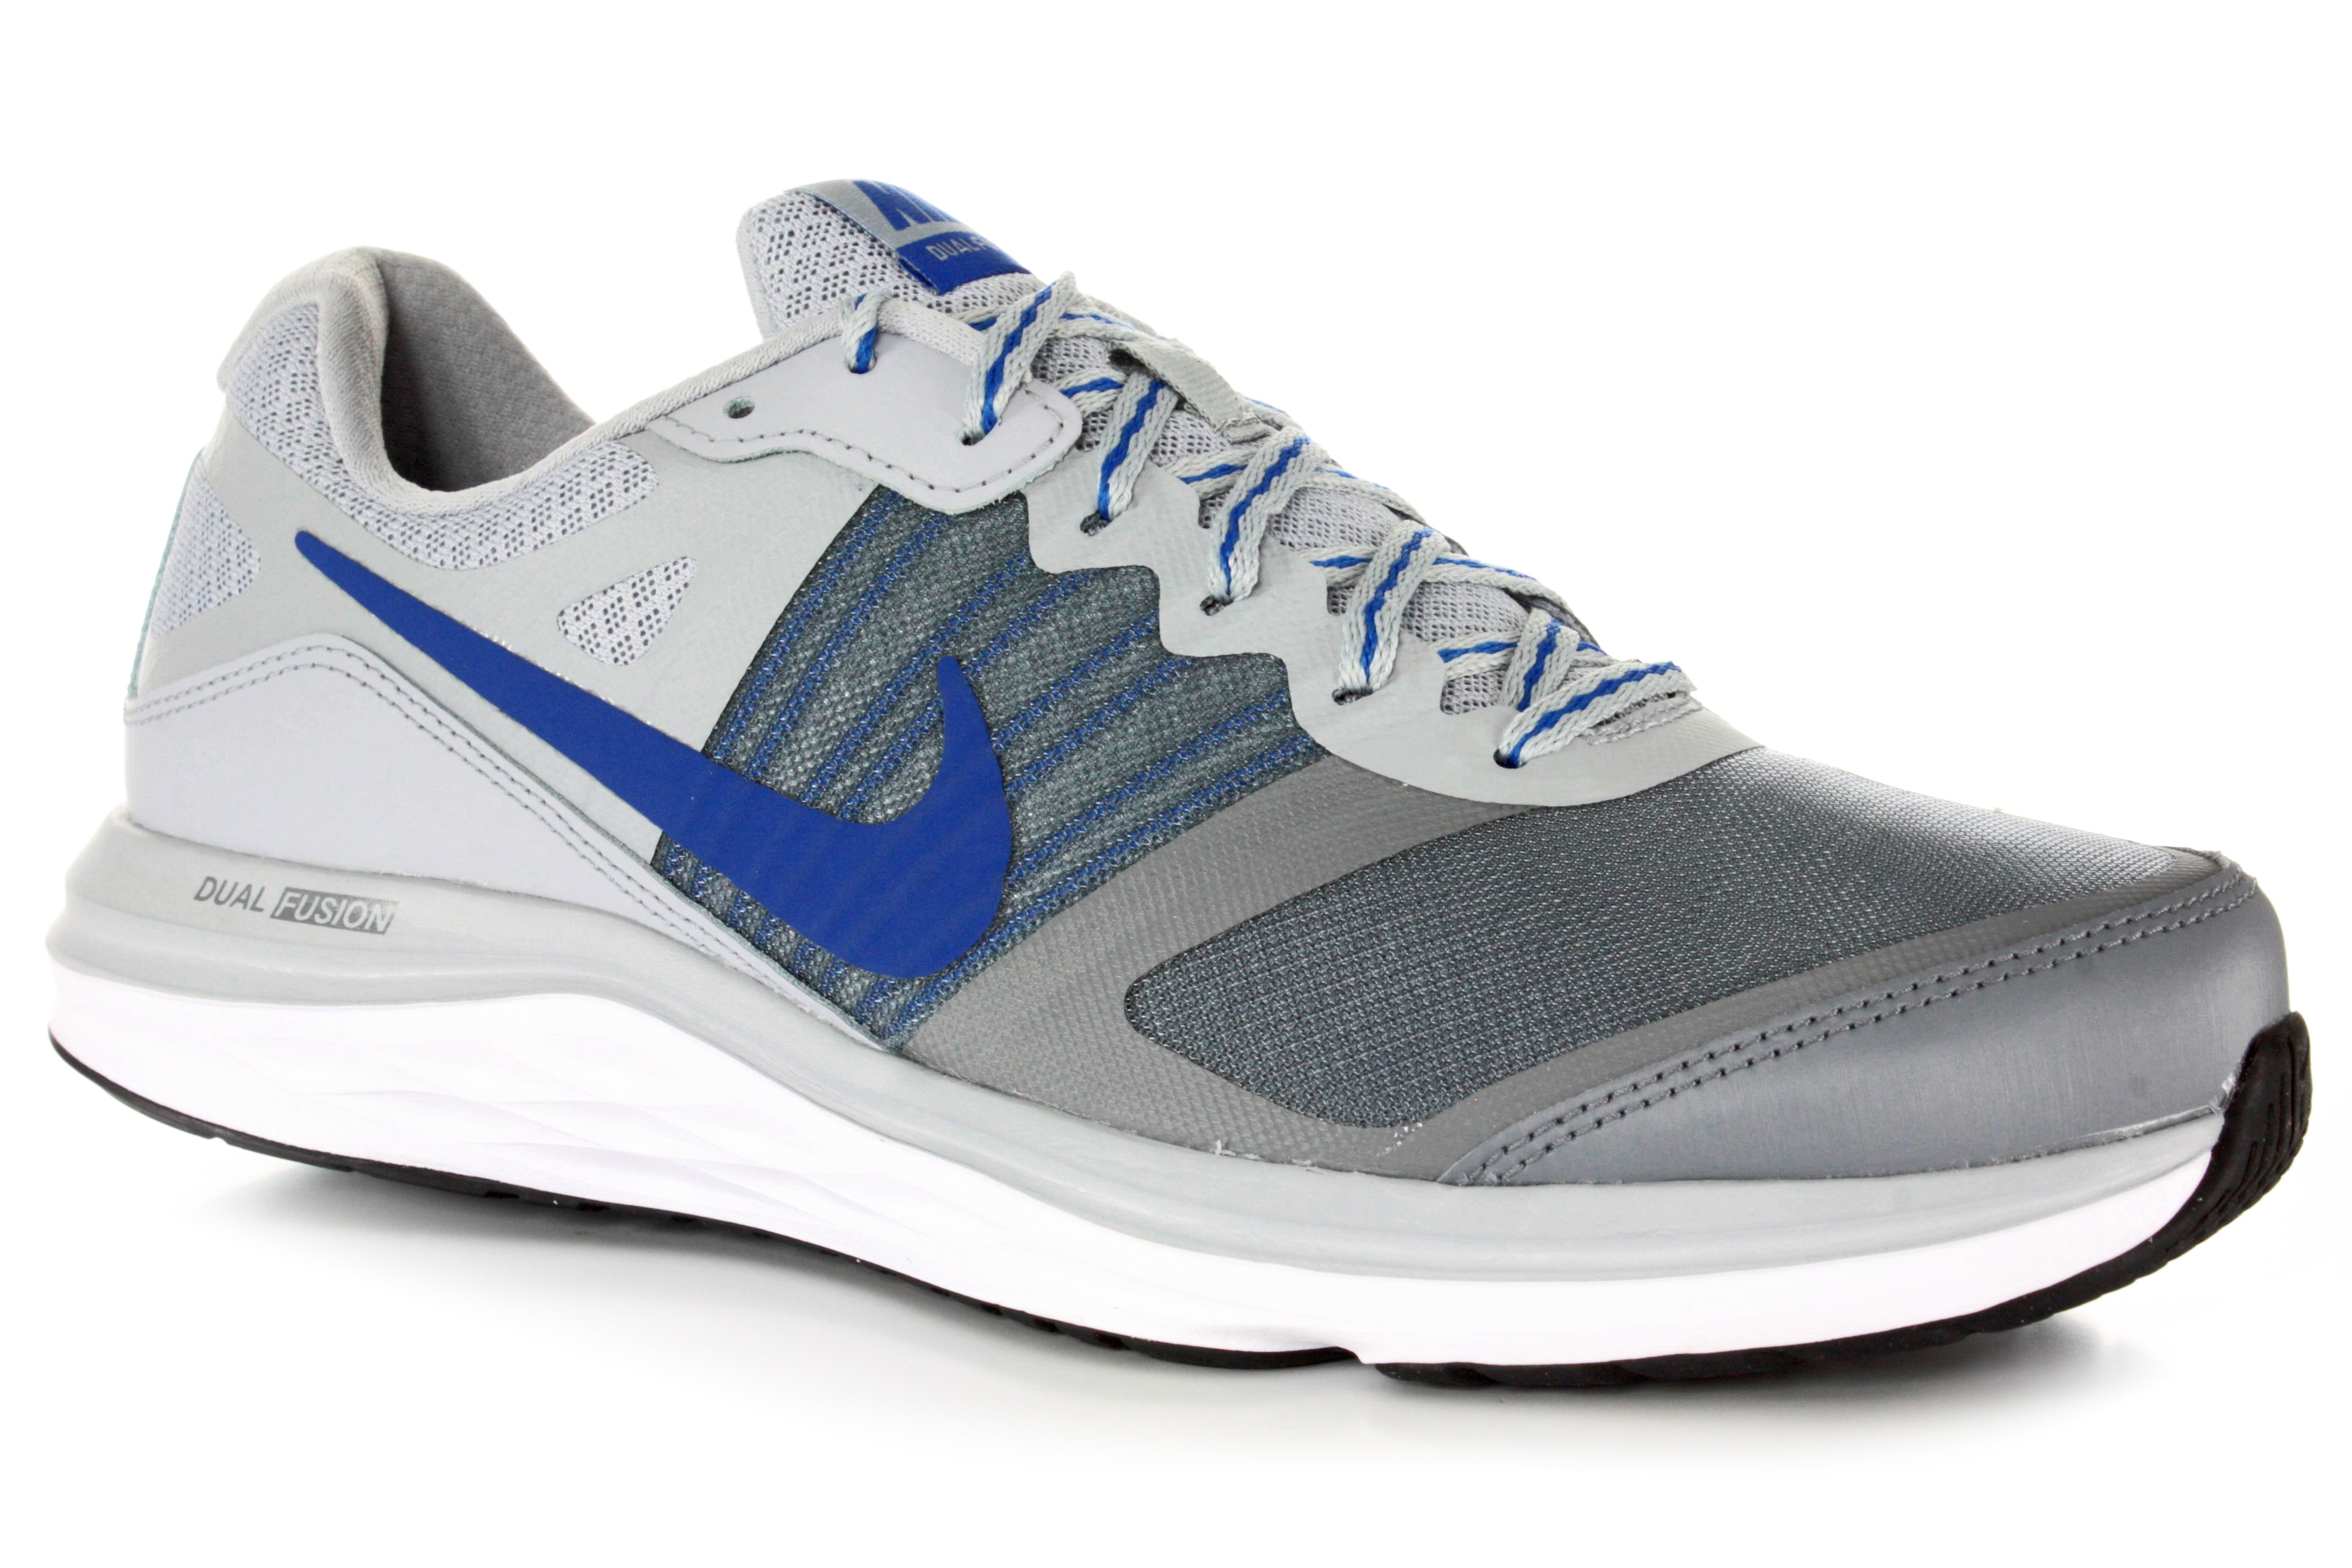 Nike Dual Fusion X M Chaussures homme